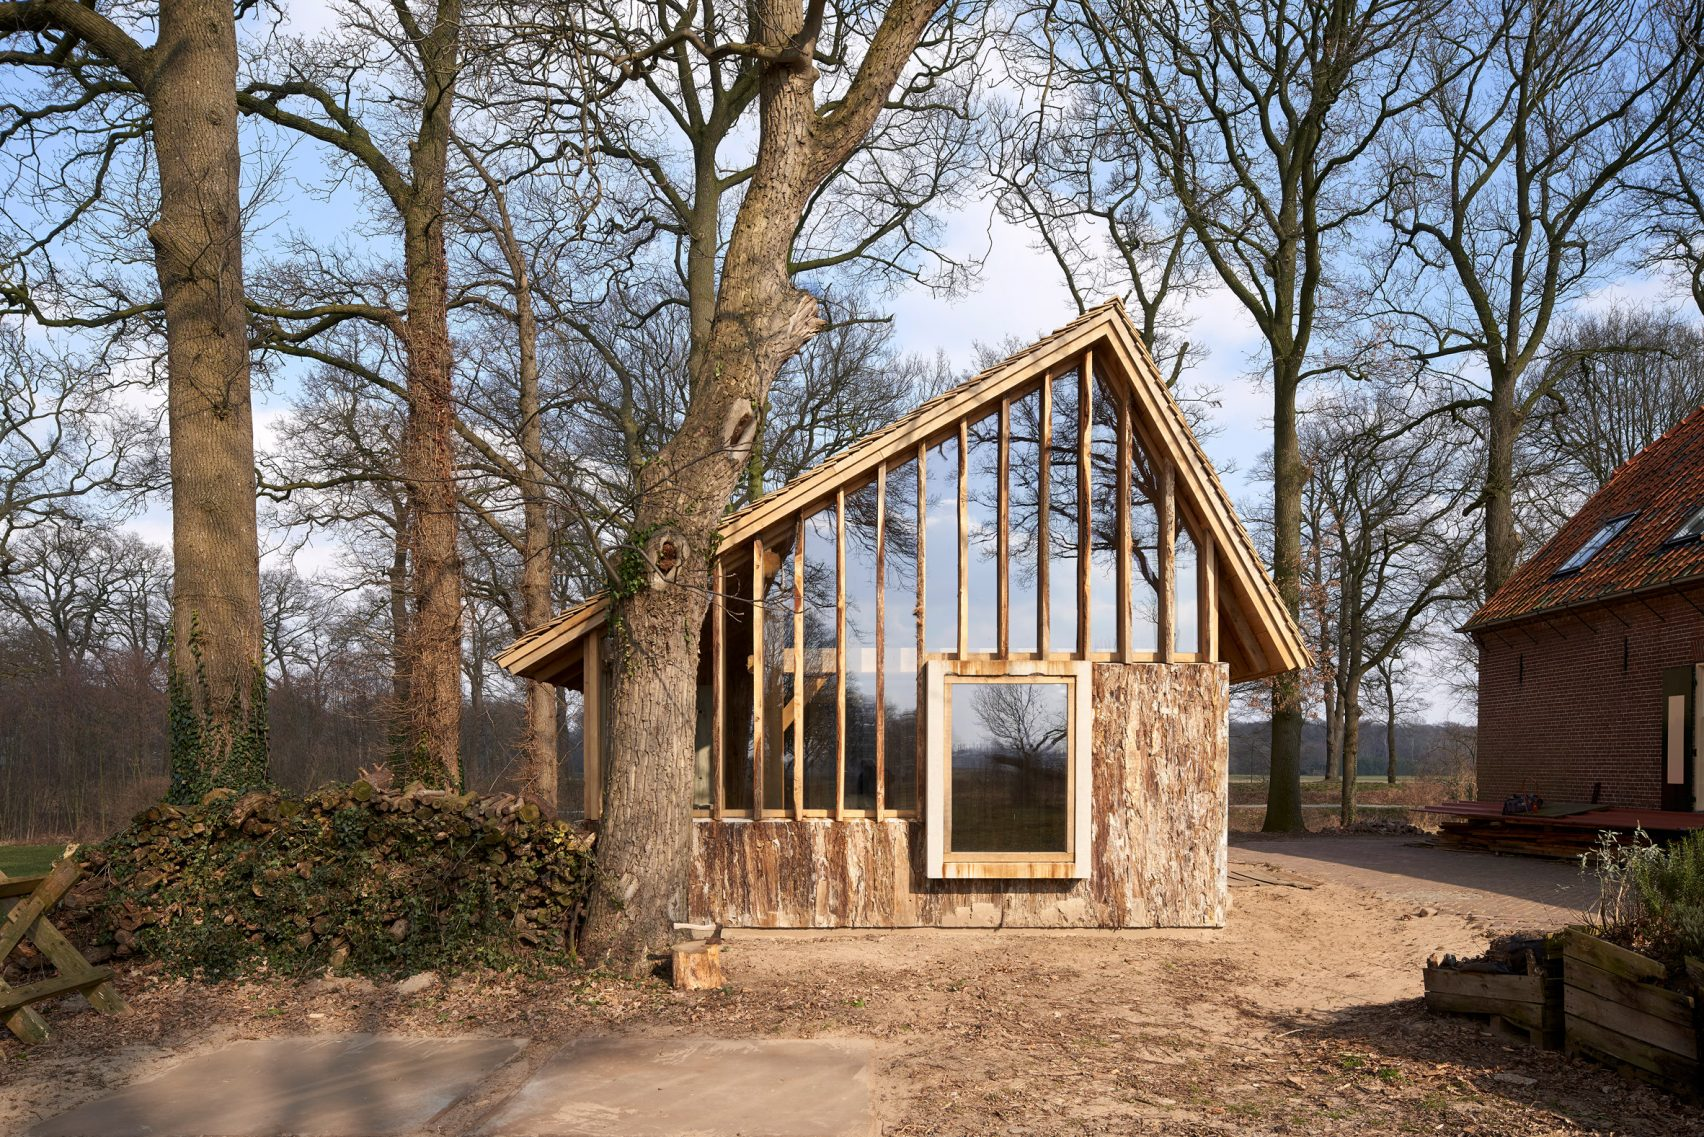 This Rustic Barn Was Made From Trees On Site